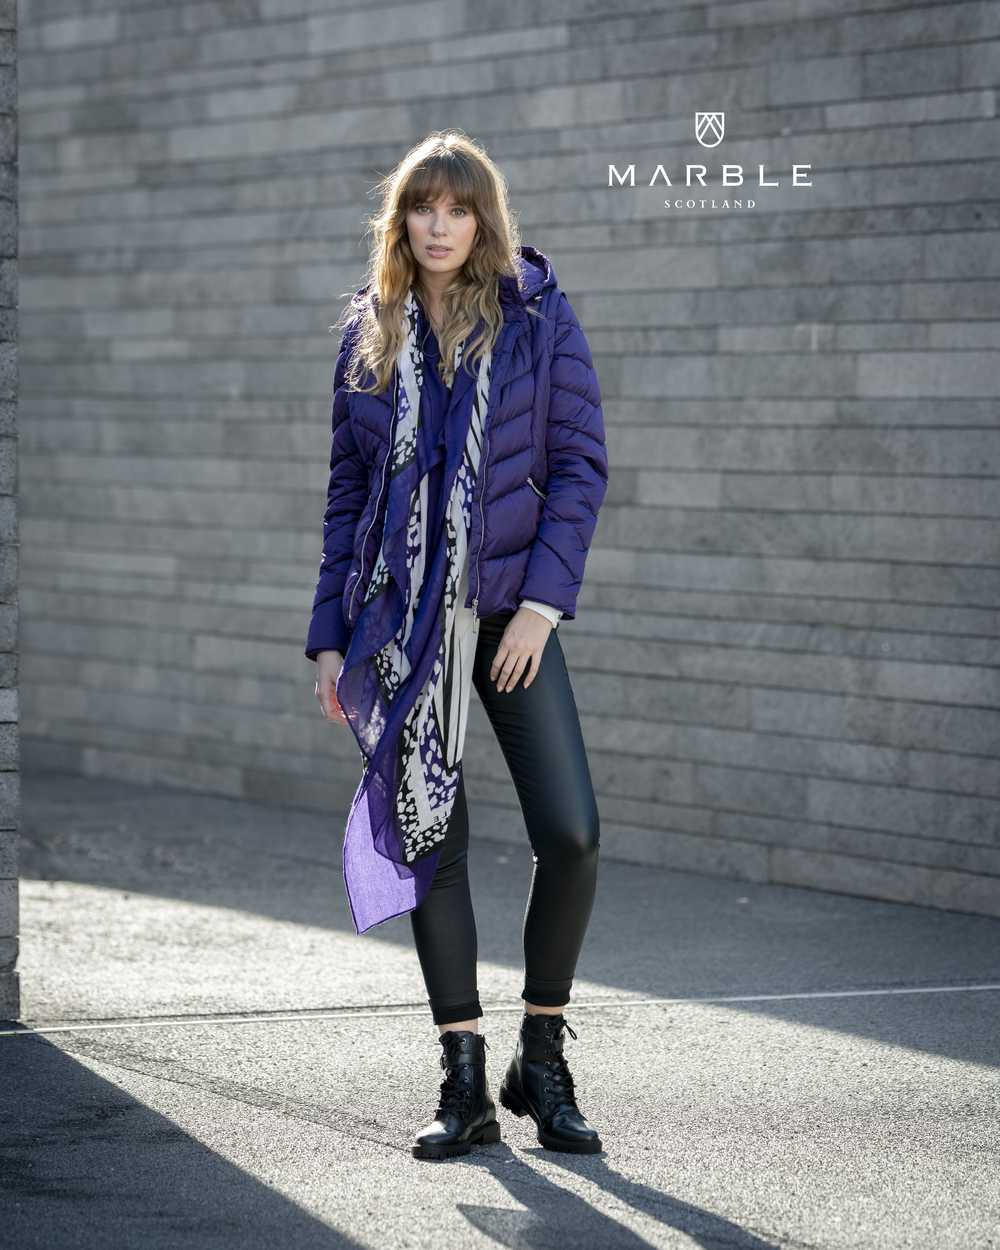 Marble Collection 10